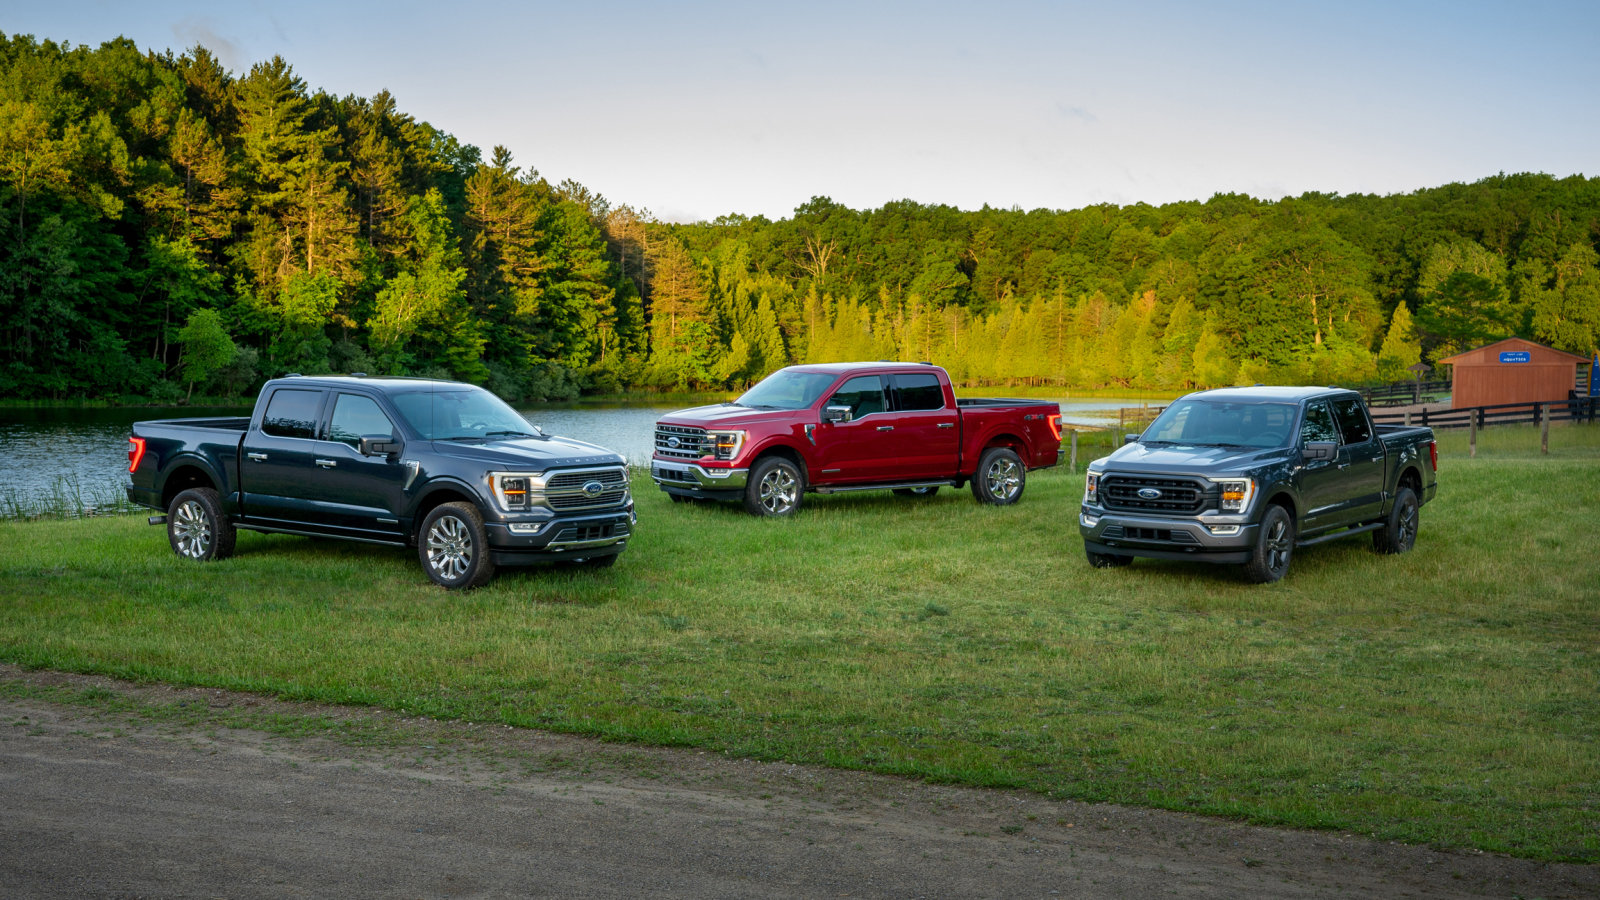 2021 Ford F-150 disclose: Crossbreed, brand-new powertrains, fresh inside, technology